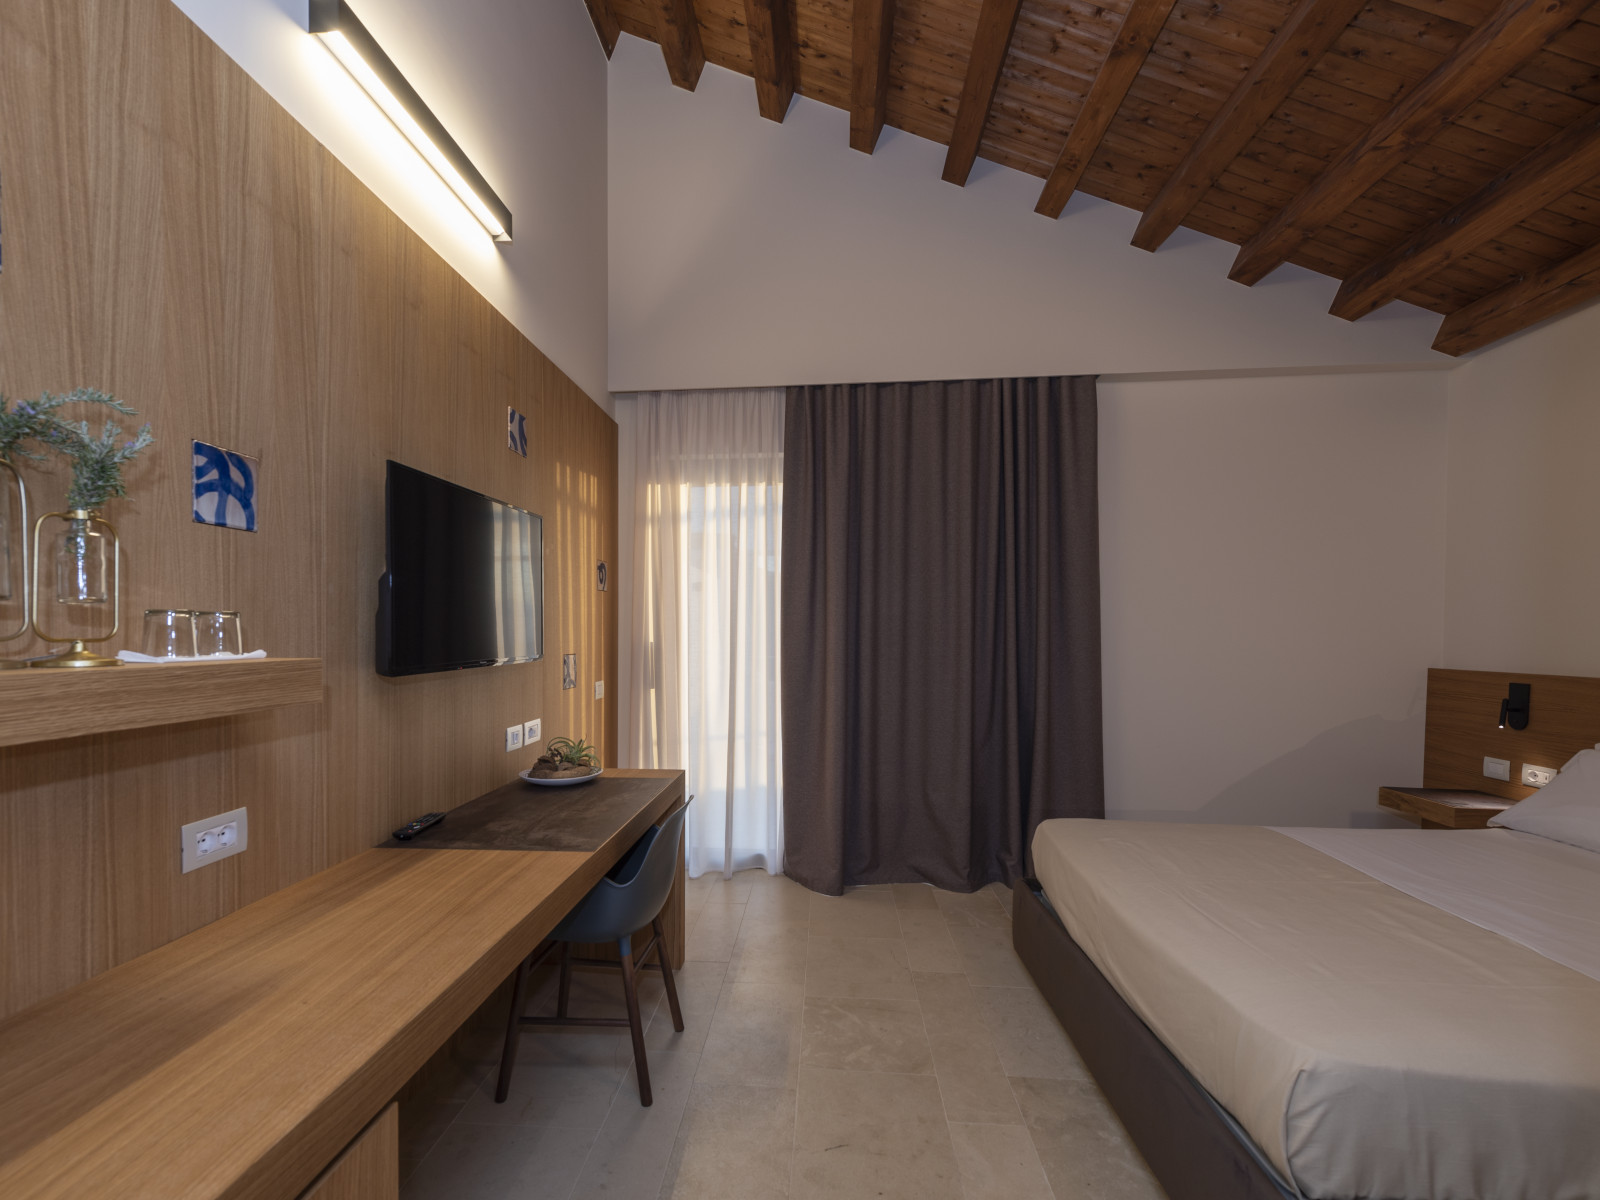 Luxury_Room_-_Libeccio_3gallery.jpg